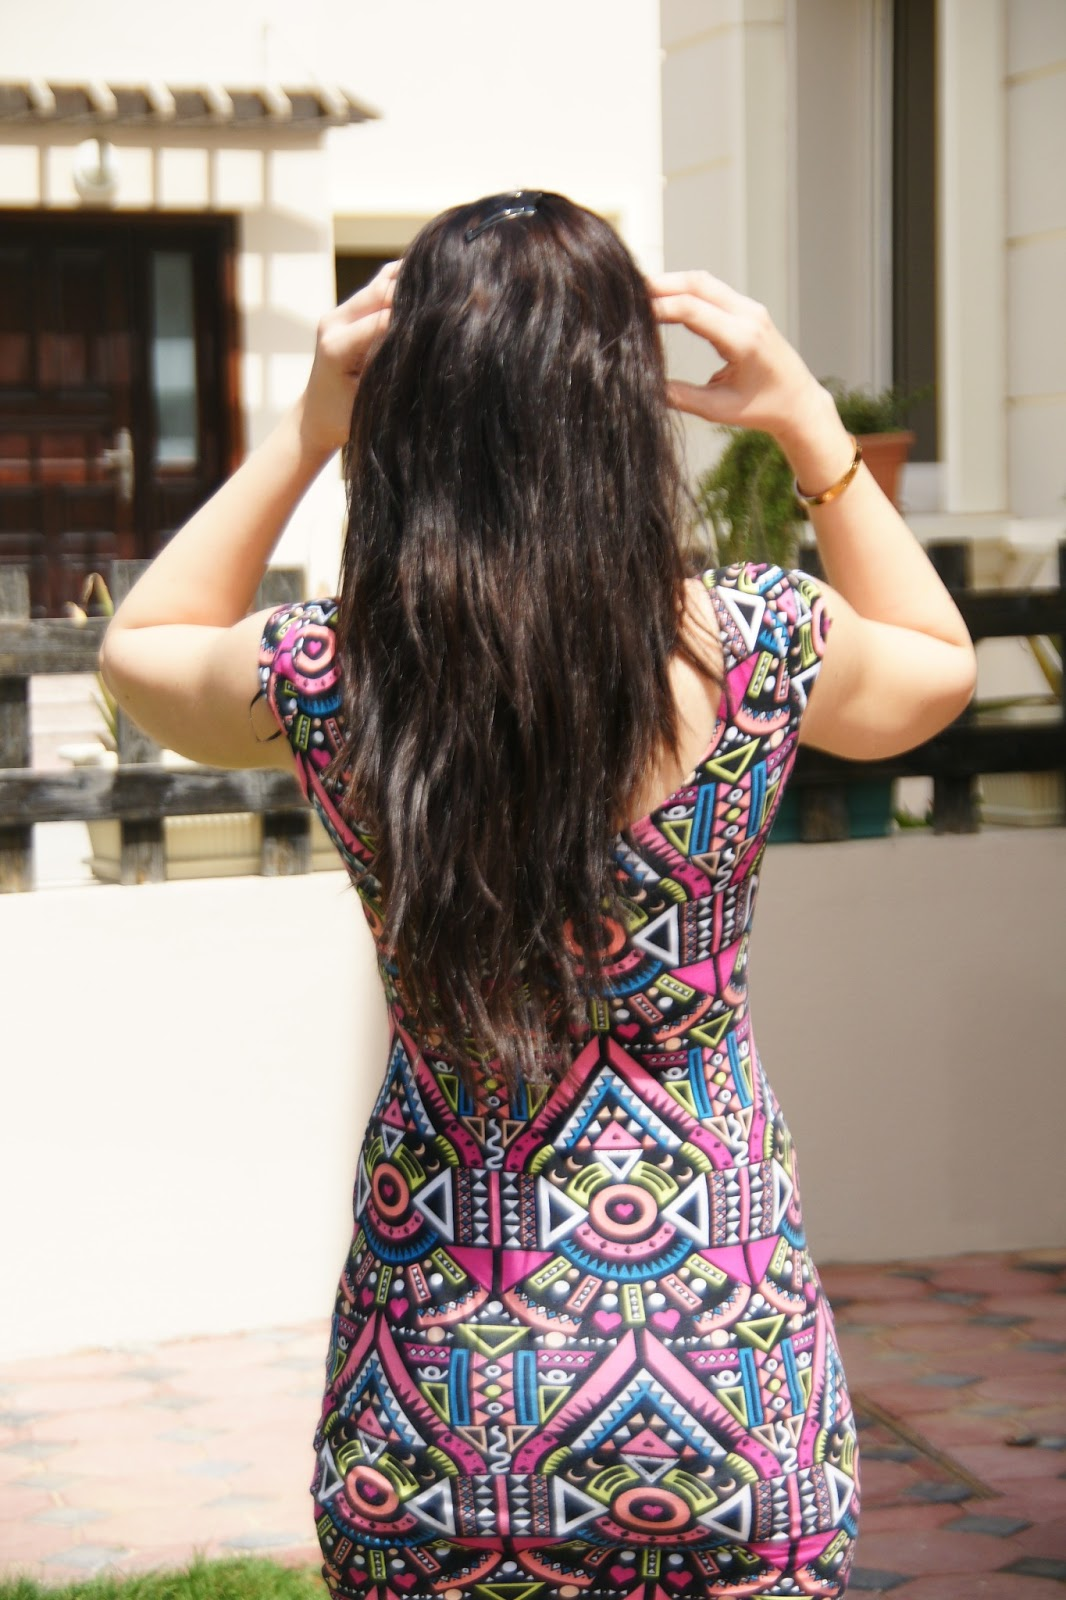 In Love With Aztec